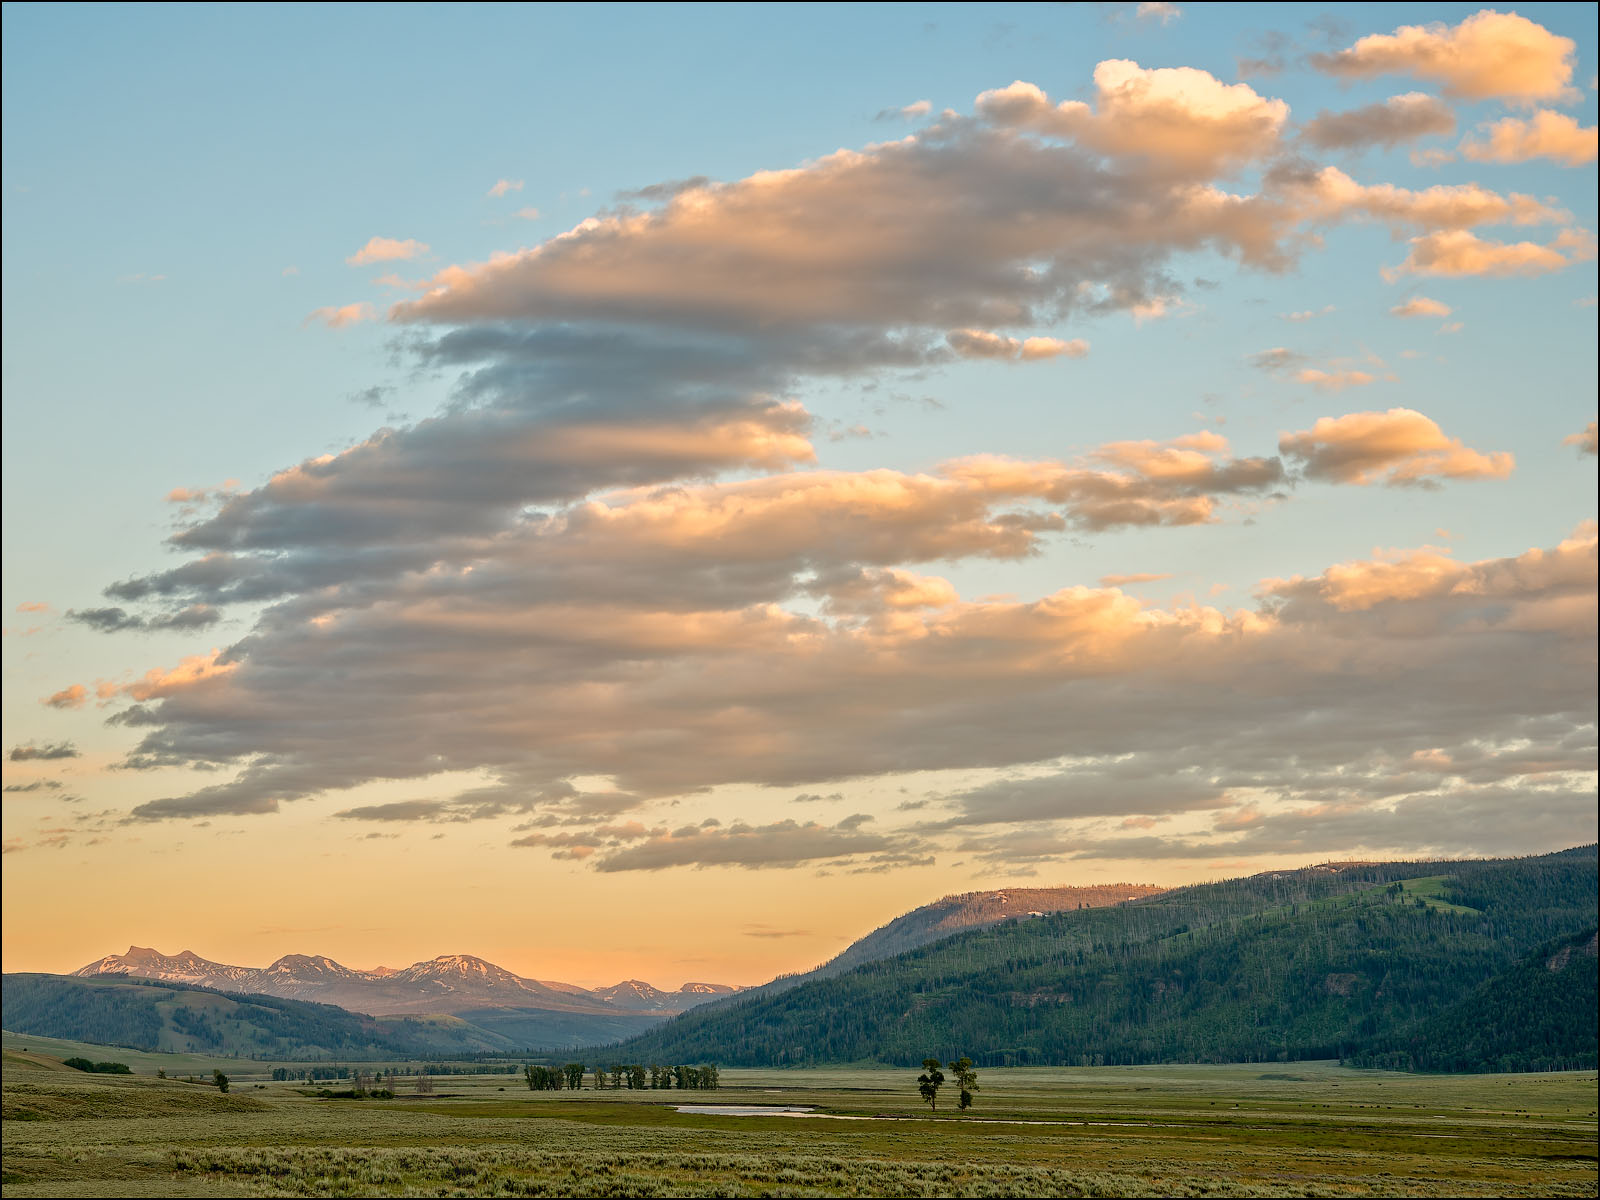 Sunset clouds over Lamar Valley, Yellowstone National Park, Wyoming.